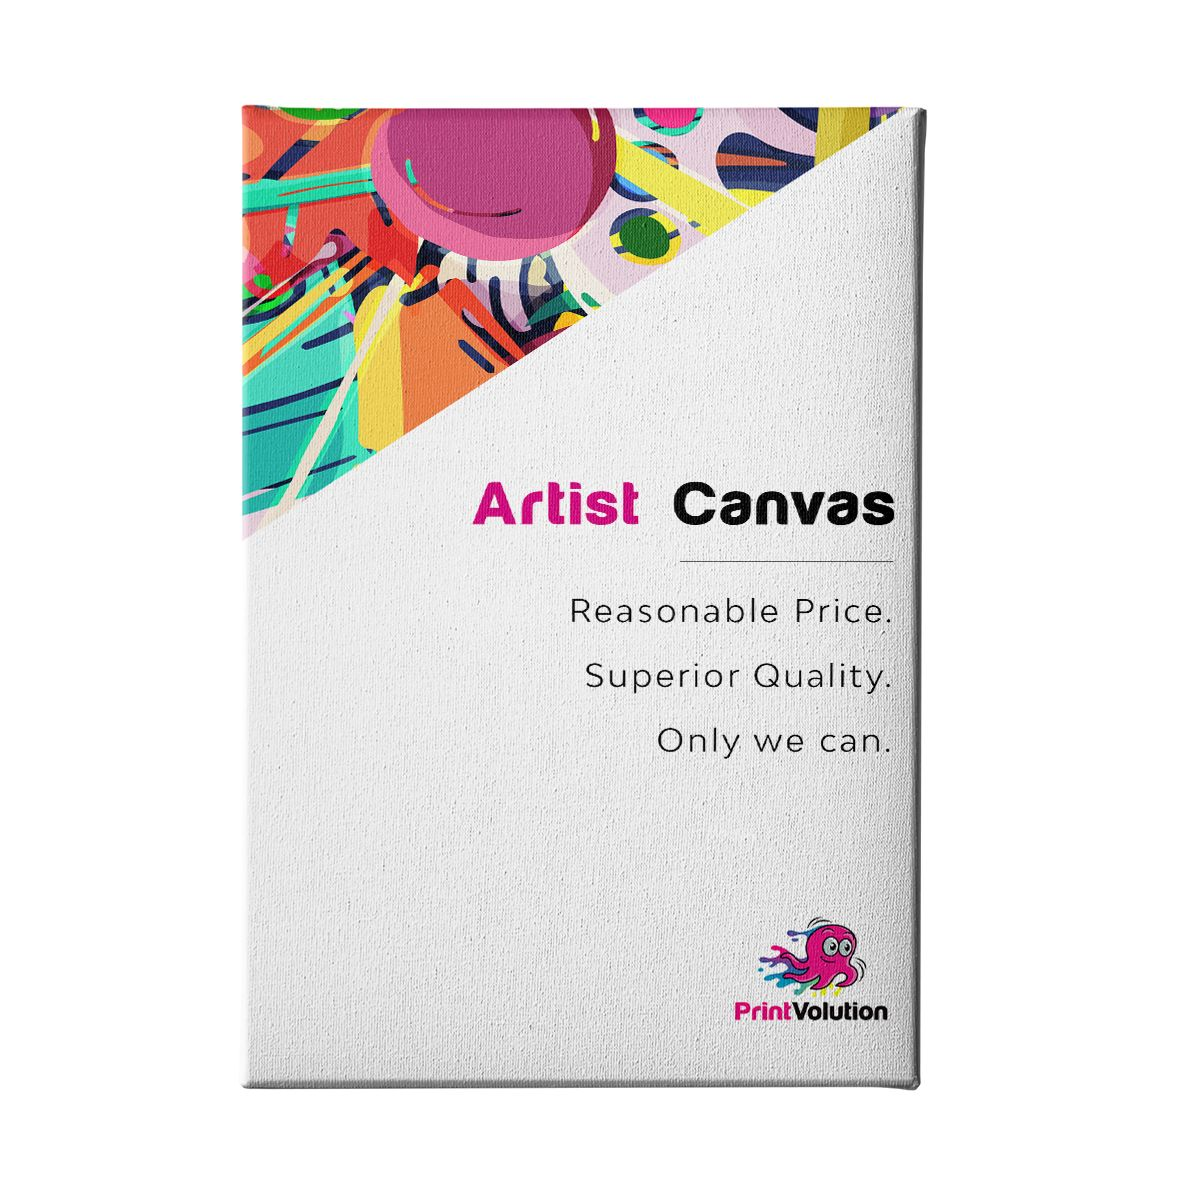 Best Print Shop In Singapore For Express Printing Services Printvolution Printing Services Print Artist Print